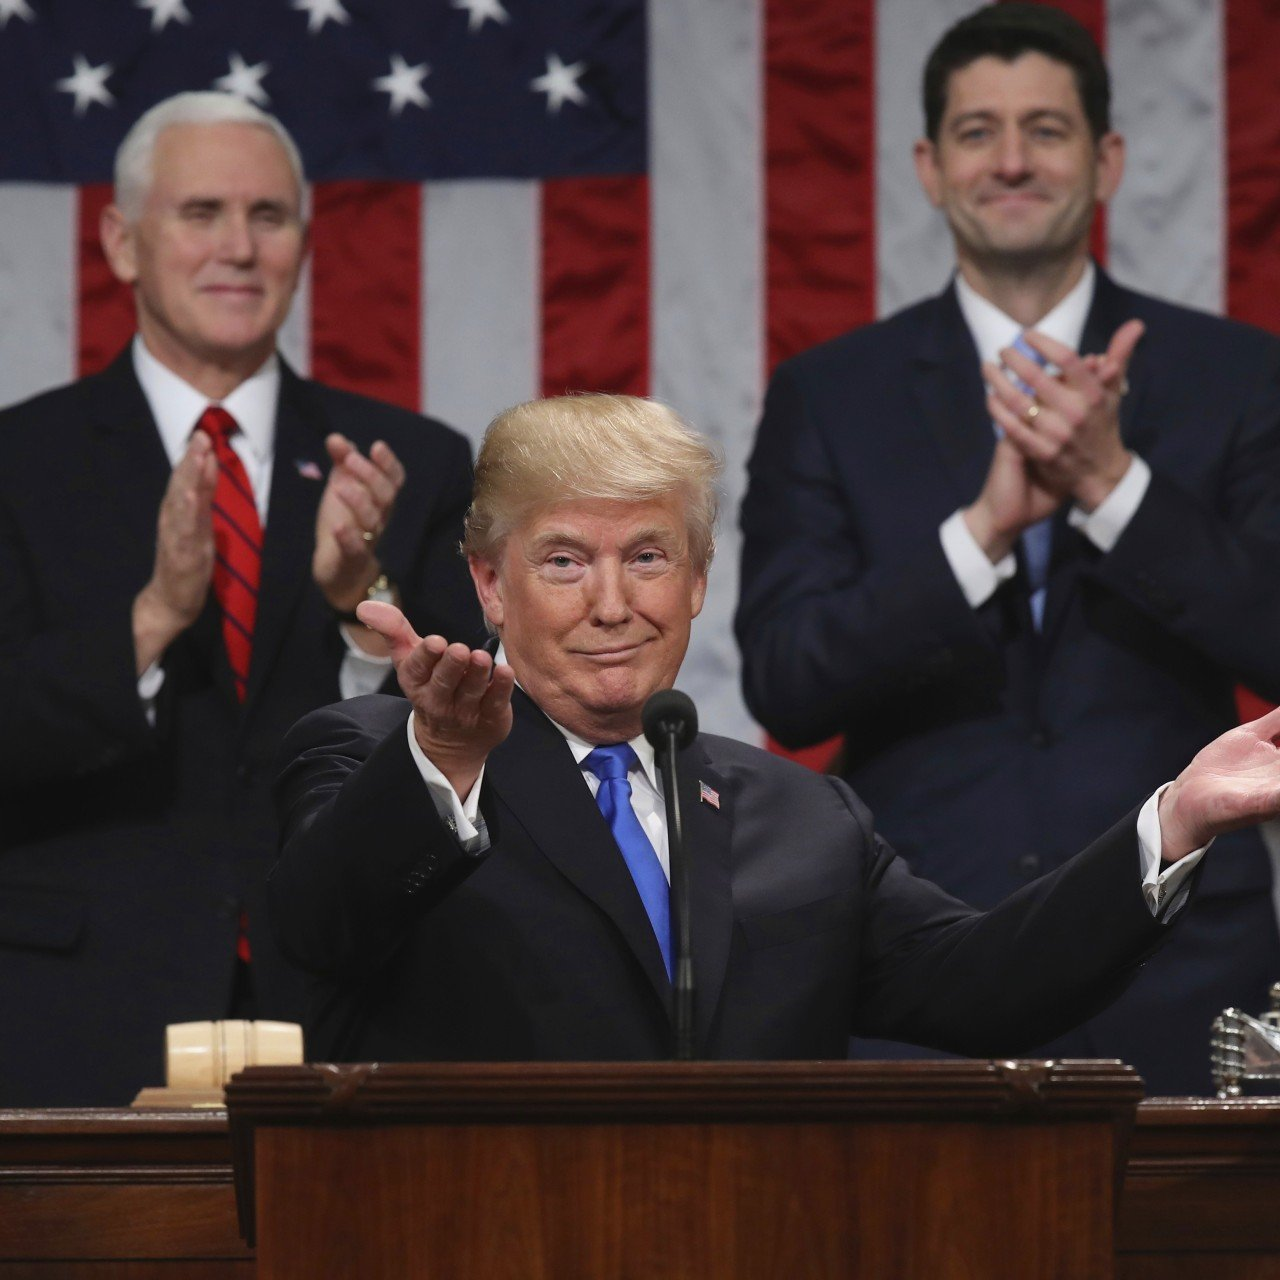 e52f03a2c Donald Trump delays State of Union address until after shutdown, amid feud  with Nancy Pelosi